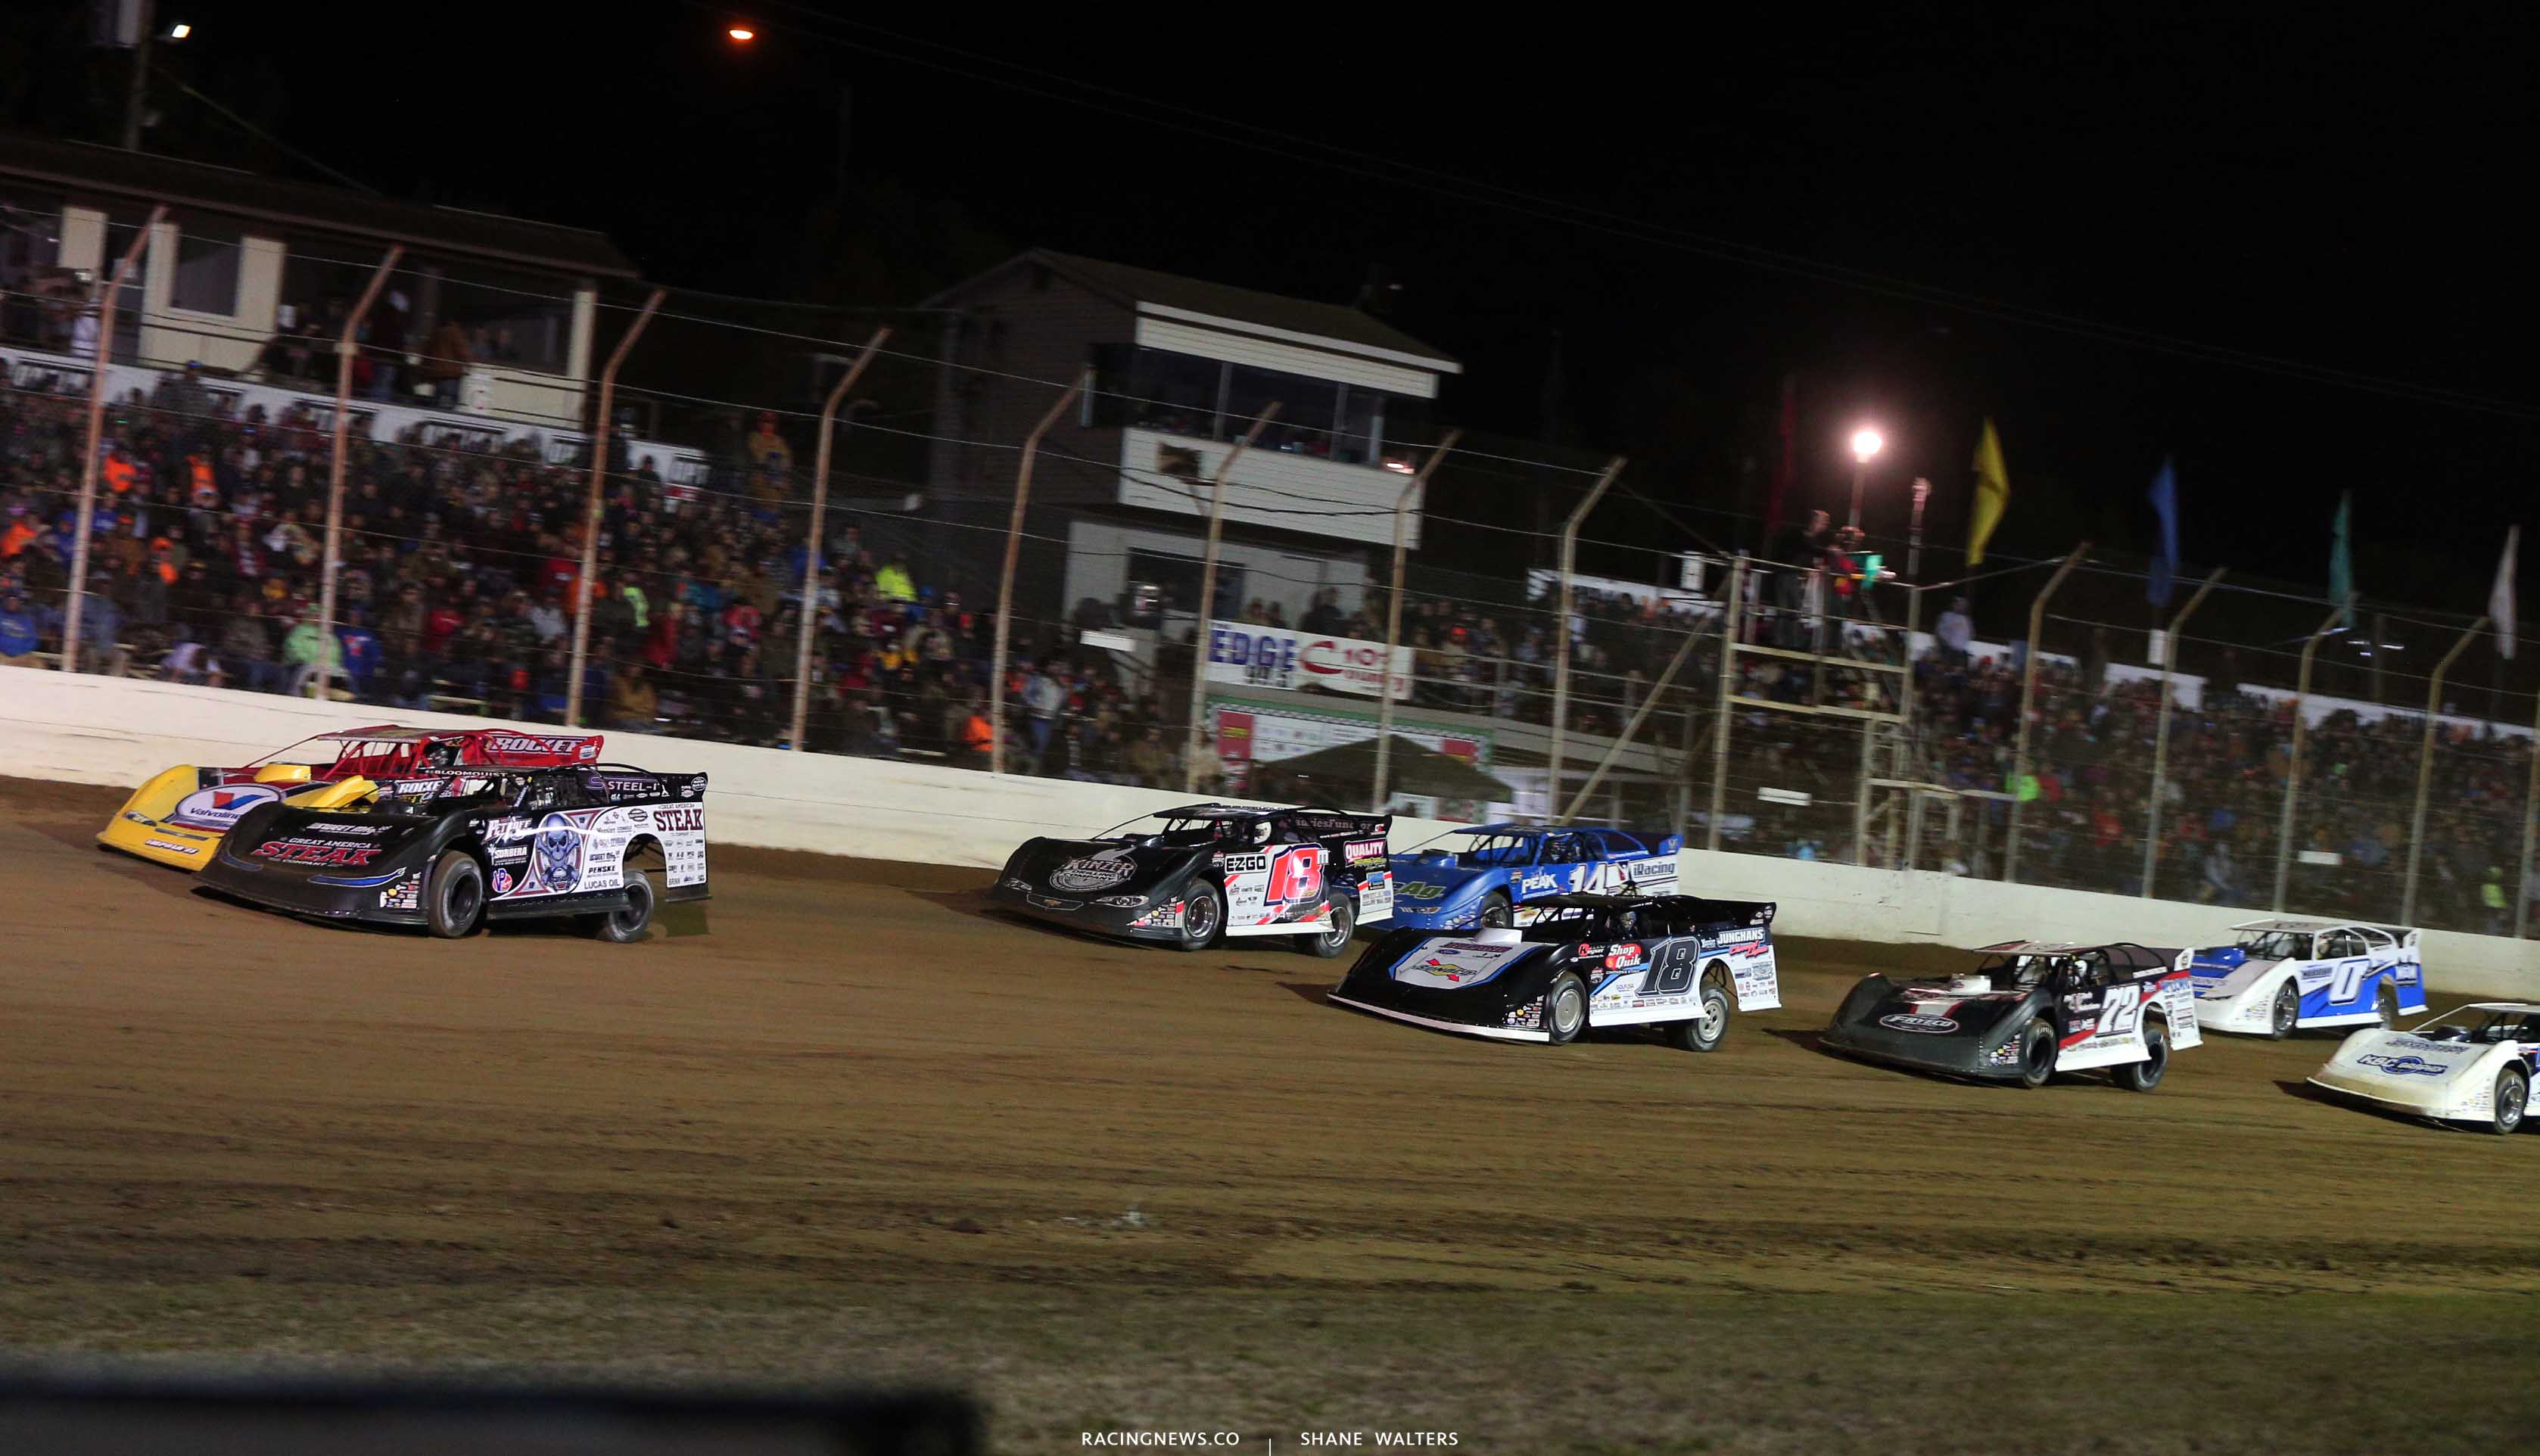 Scott Bloomquist, RJ Conley, Chase Junghans, Dale McDowell and Josh Richards at Portsmouth Raceway Park - LOLMDS 8981